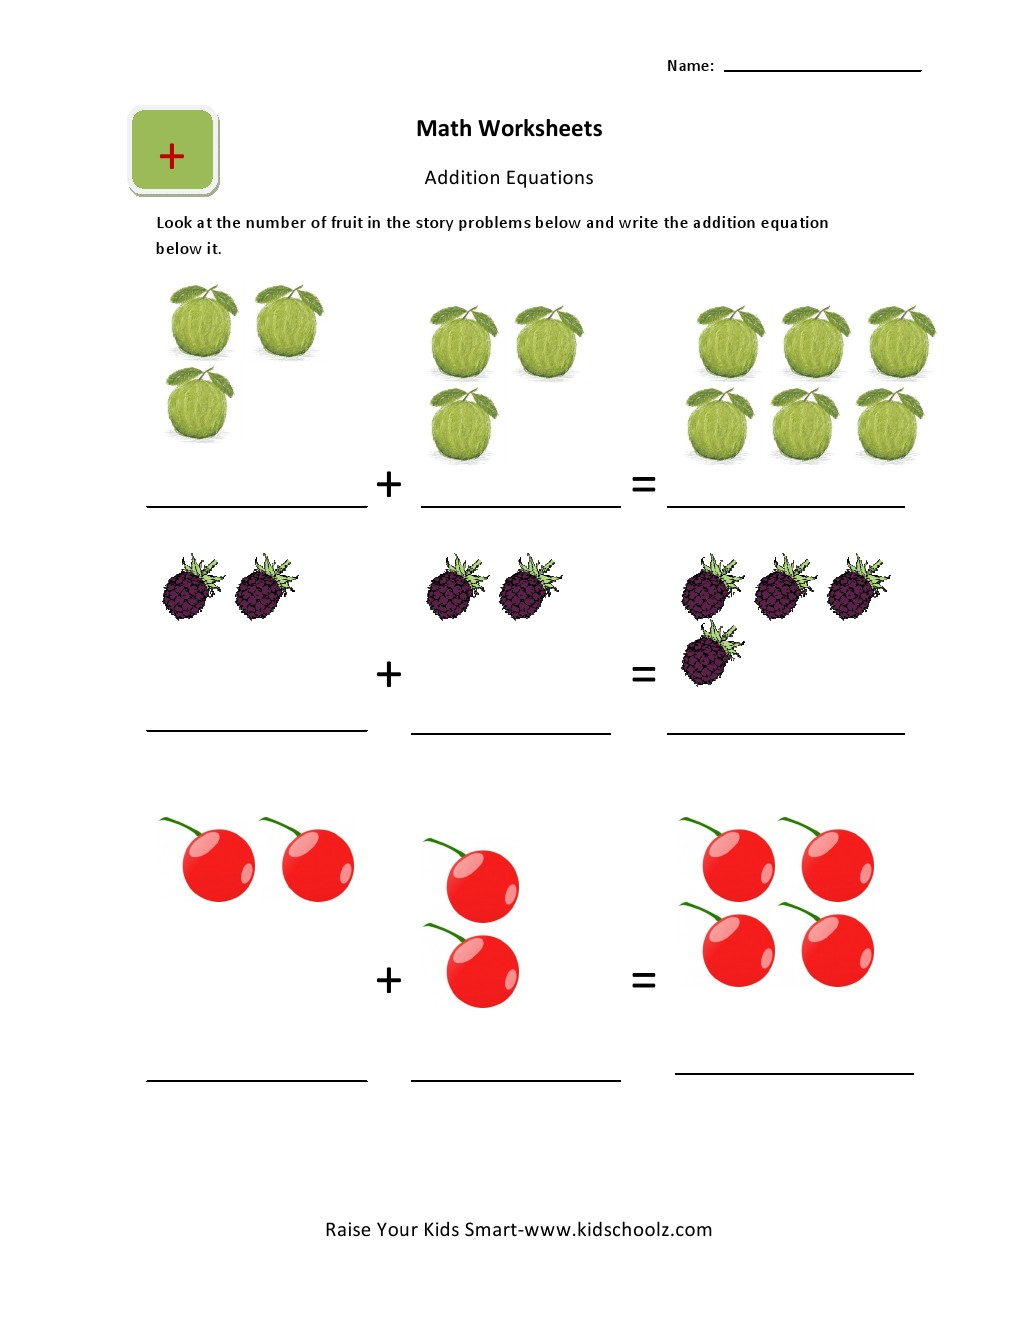 Addition Math Worksheets For UKG Kids – Ukg Maths Worksheets